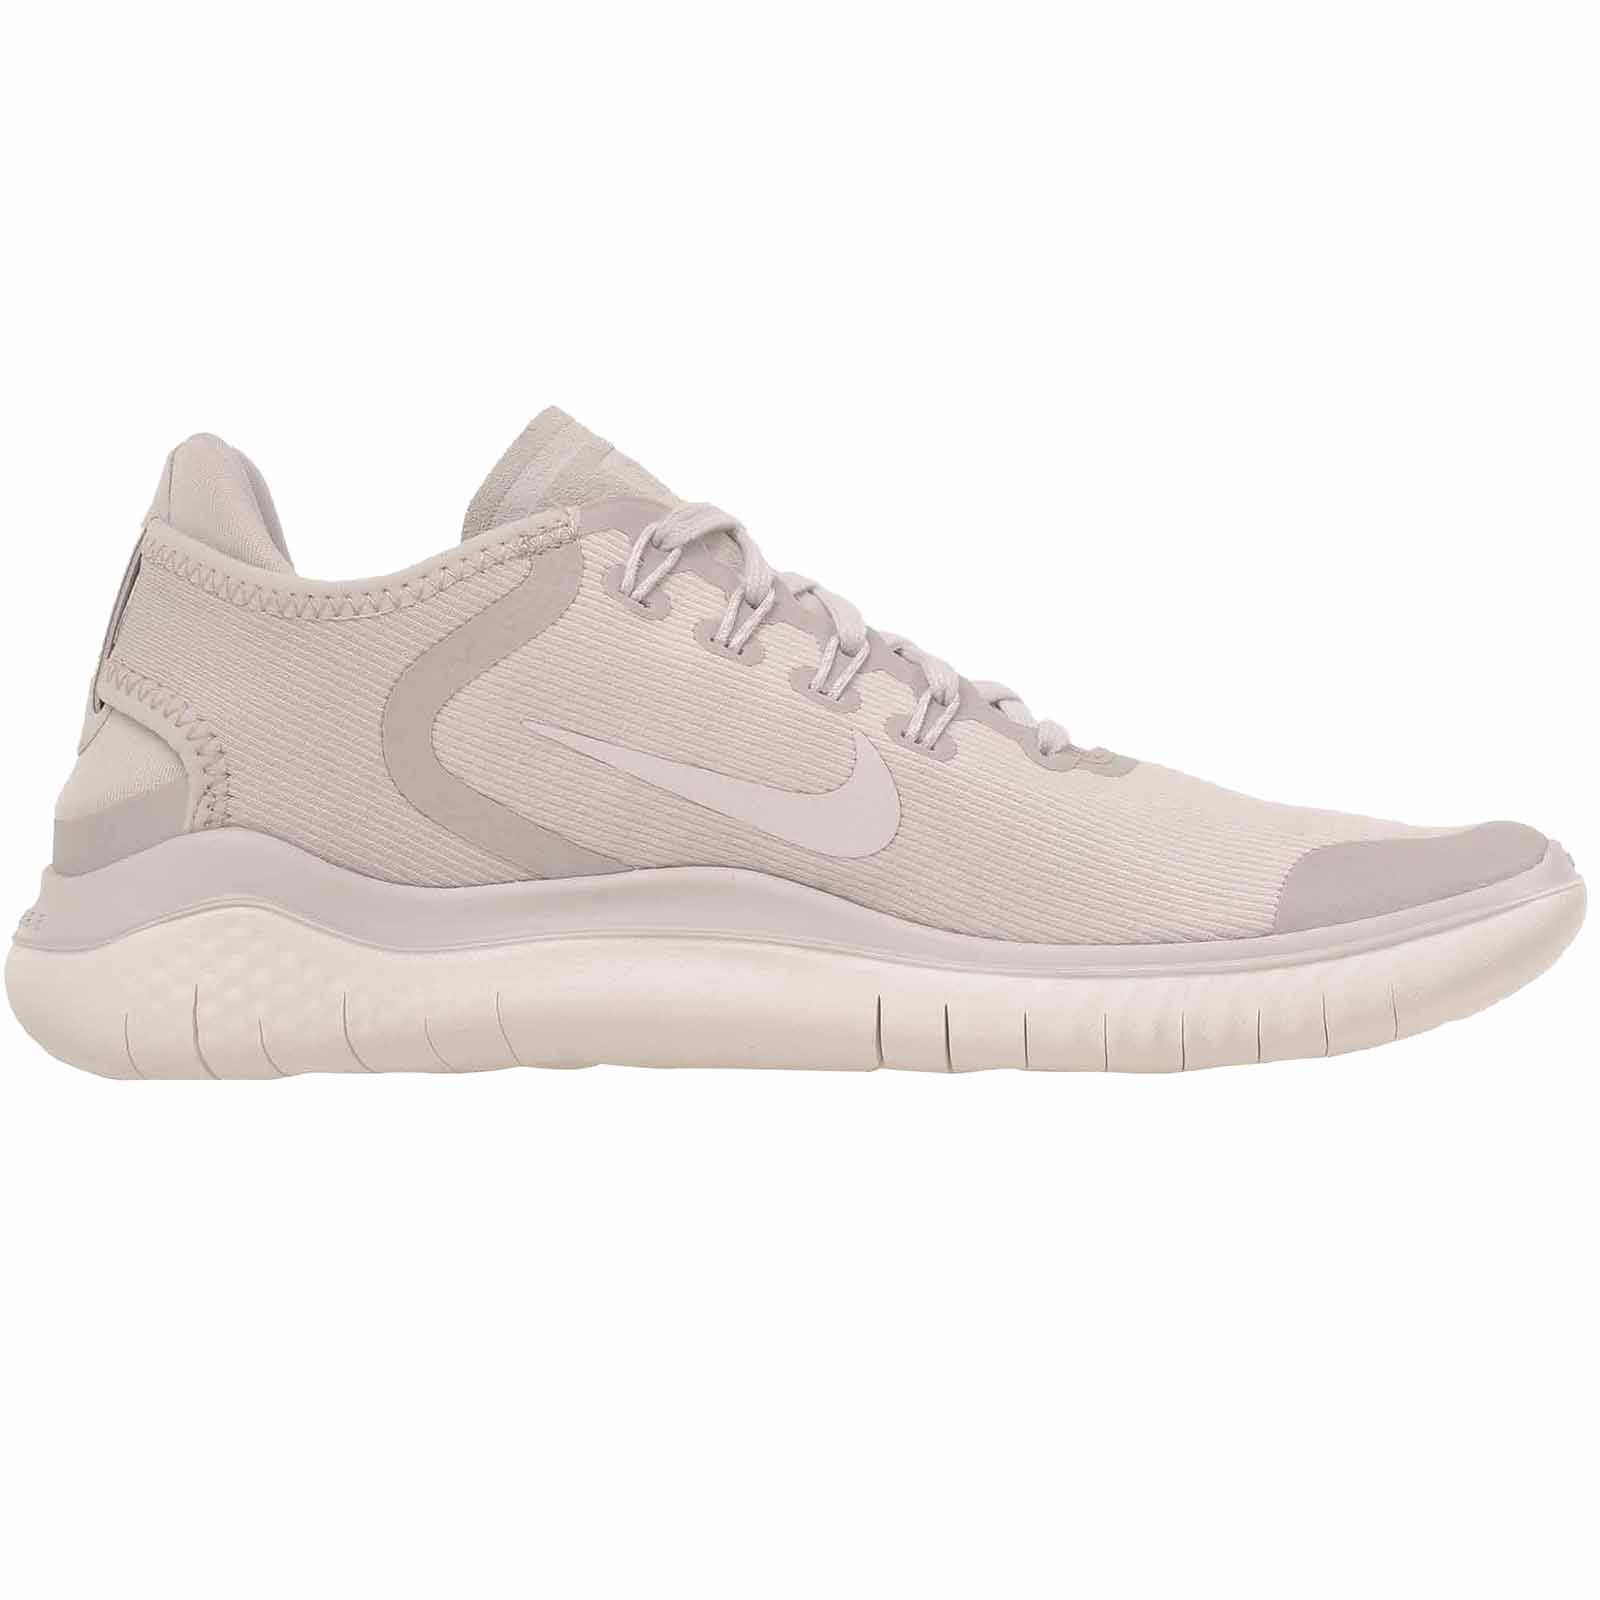 2ff05ca59932 Details about Nike Free RN 2018 SUN Running Womens Shoes Vast Grey AH5208- 001